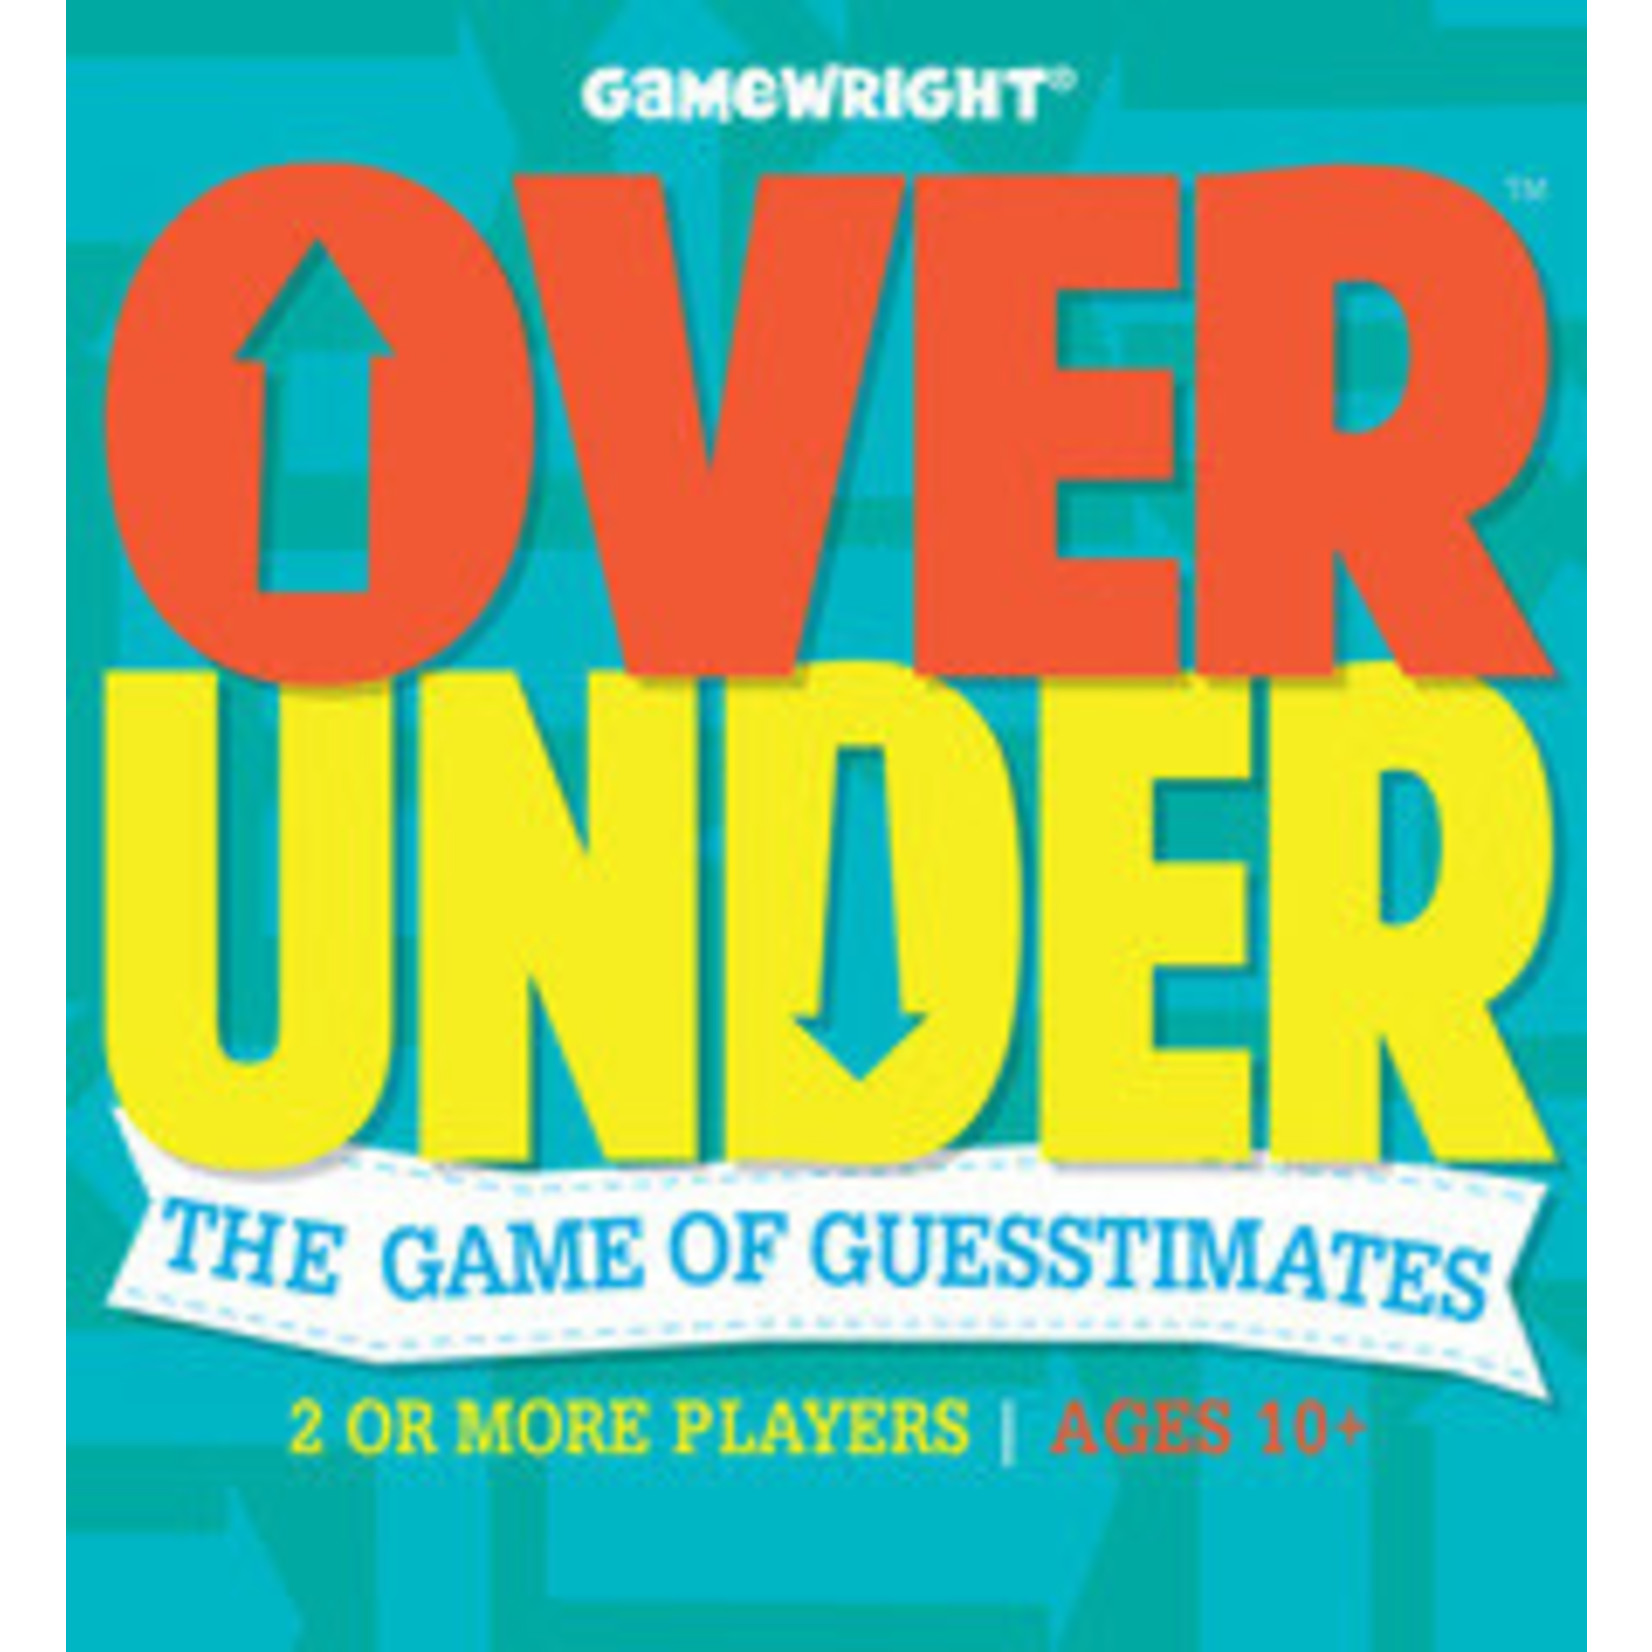 GameWright Over Under